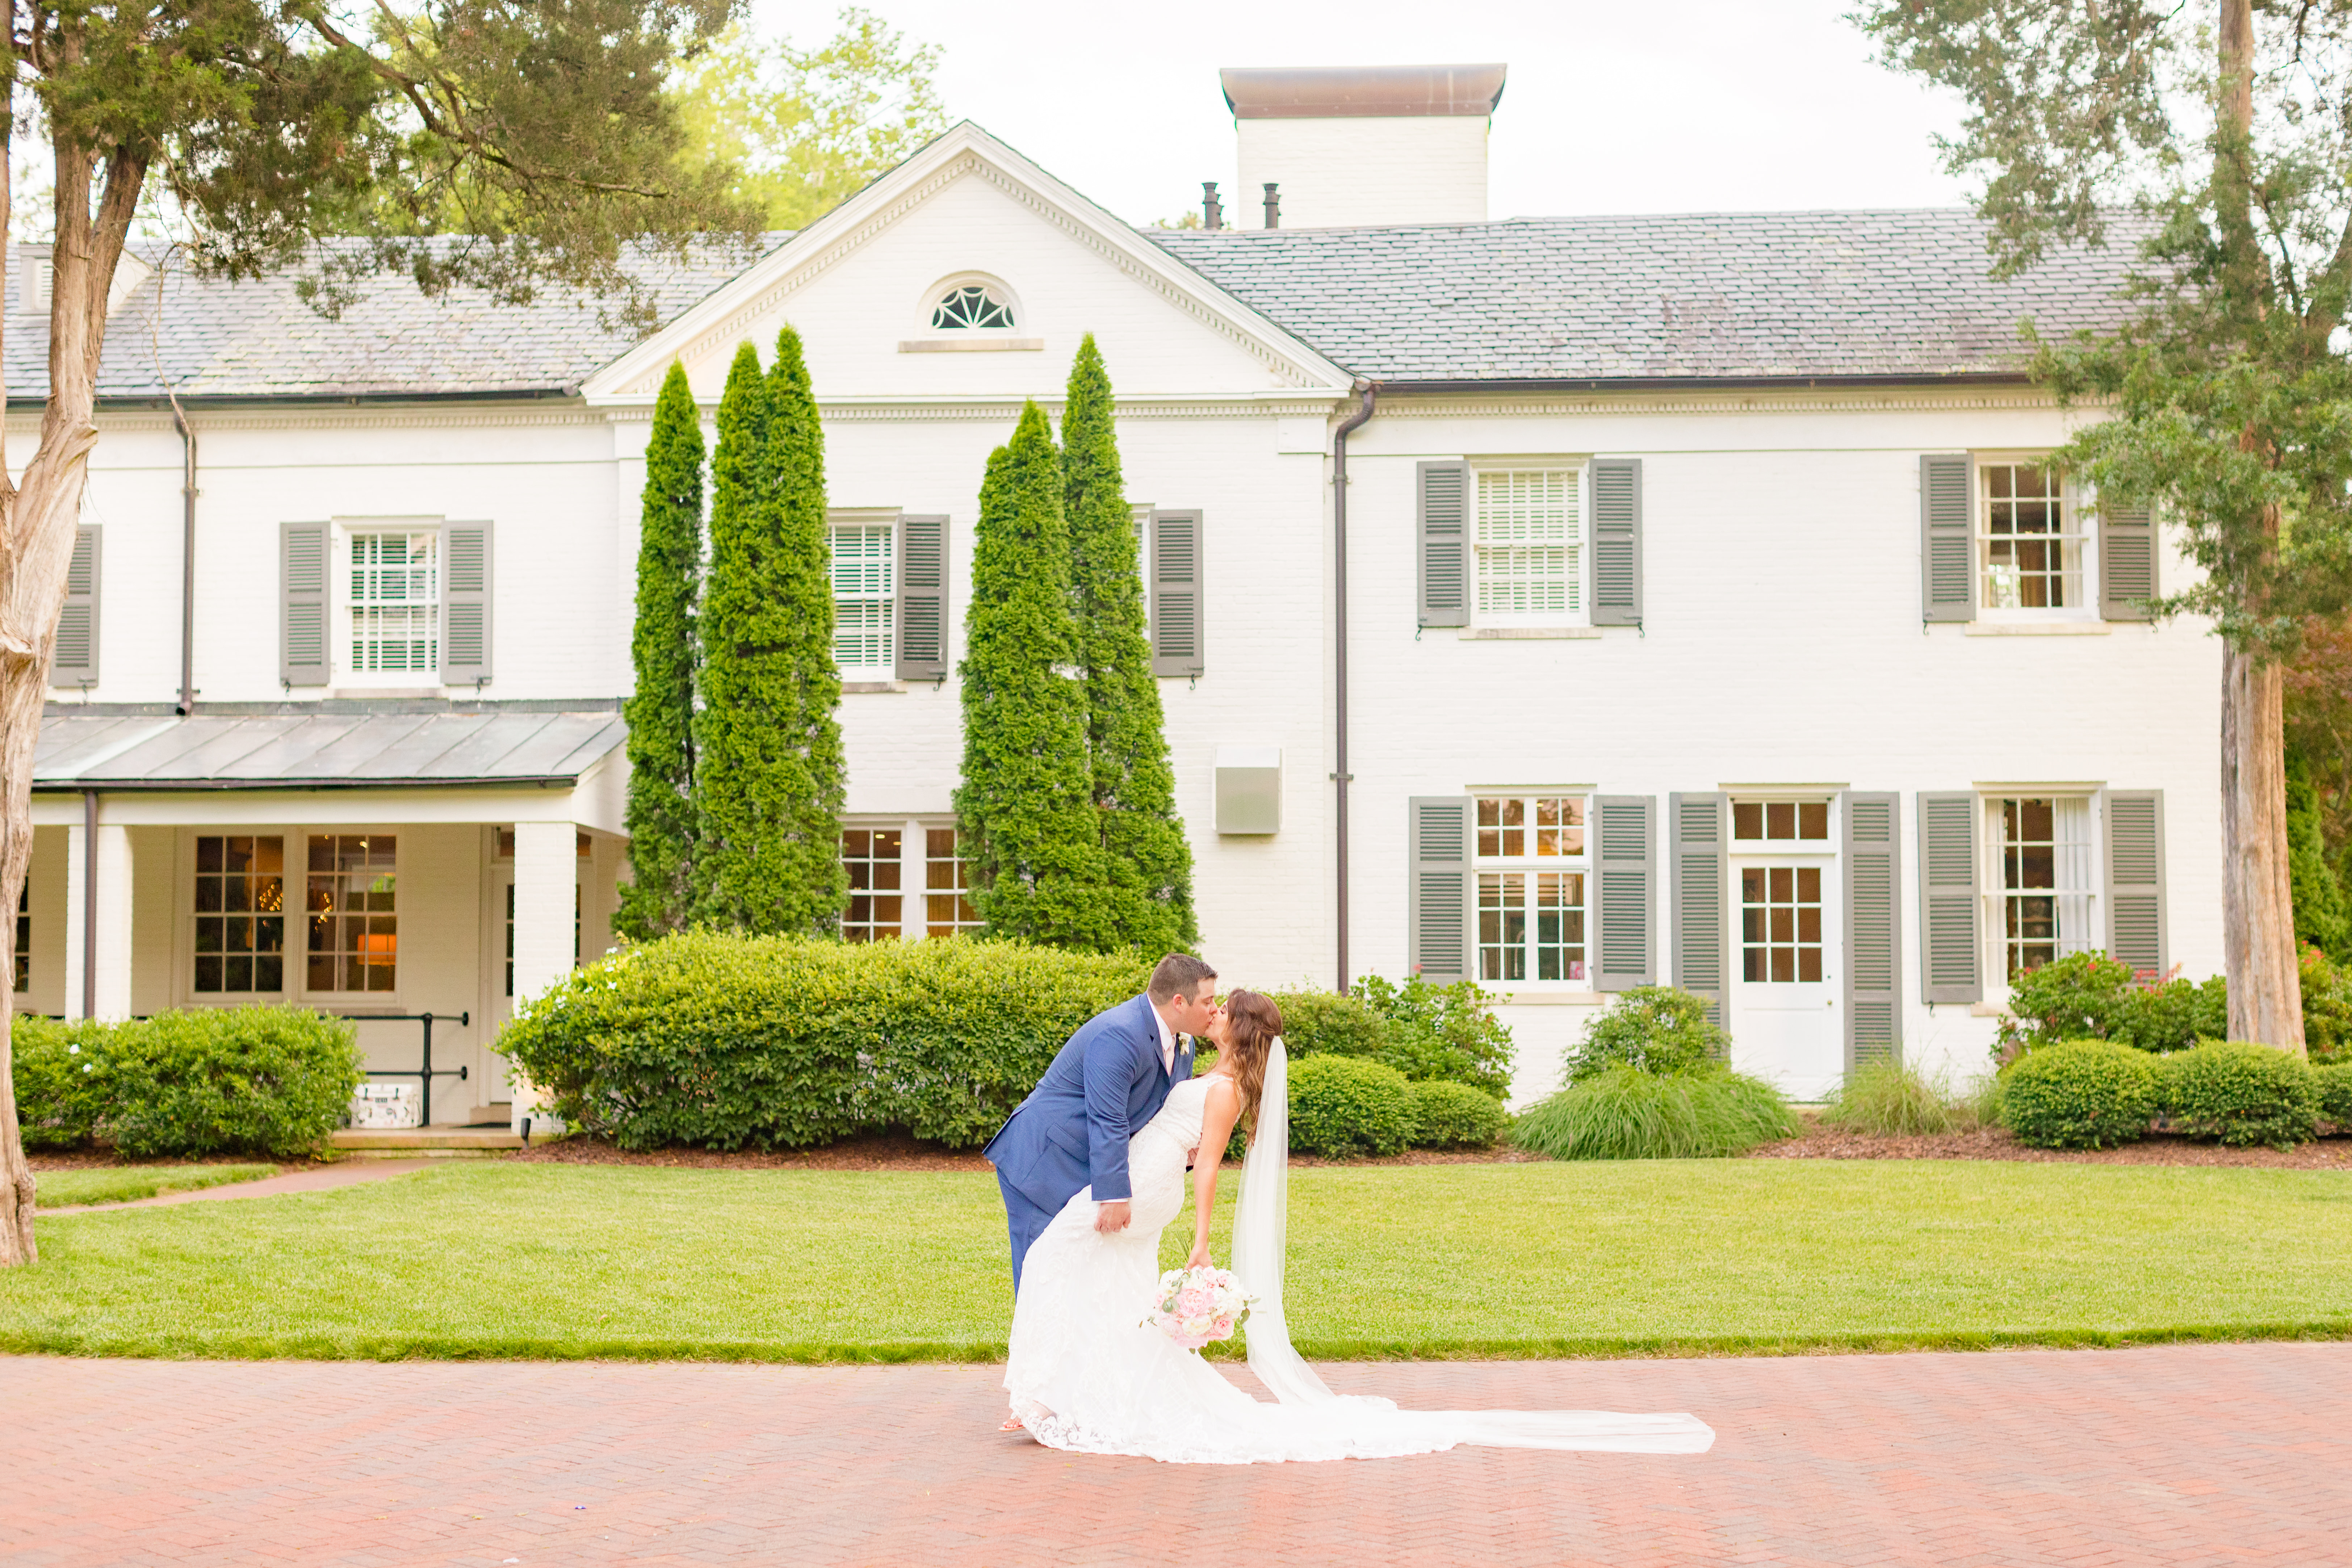 Emily + Austin | Mocksville, North Carolina | The Boxwood Estate